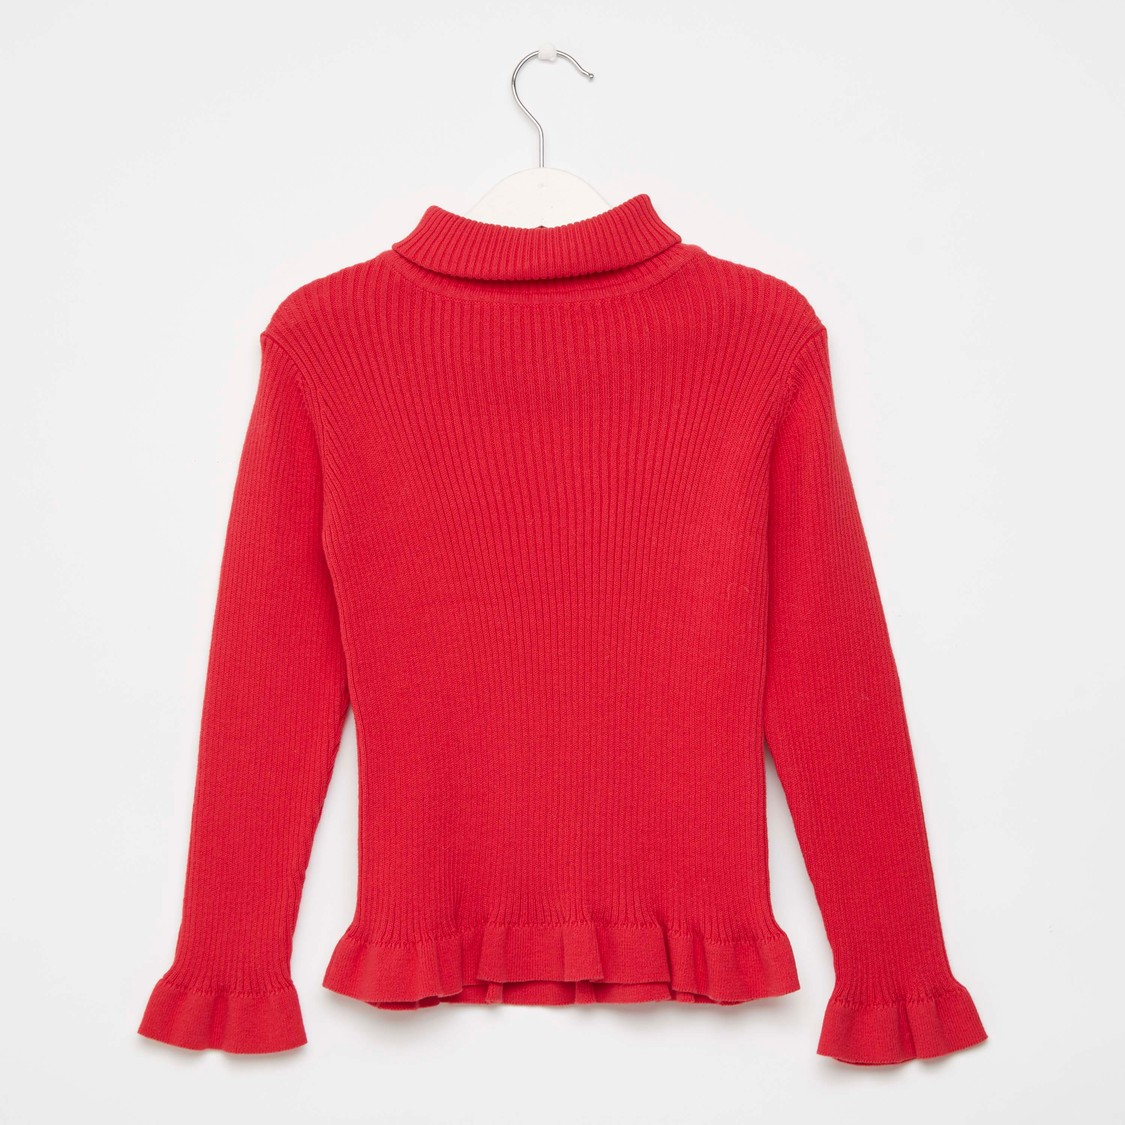 Rib Textured Turtleneck Sweater with Long Sleeves